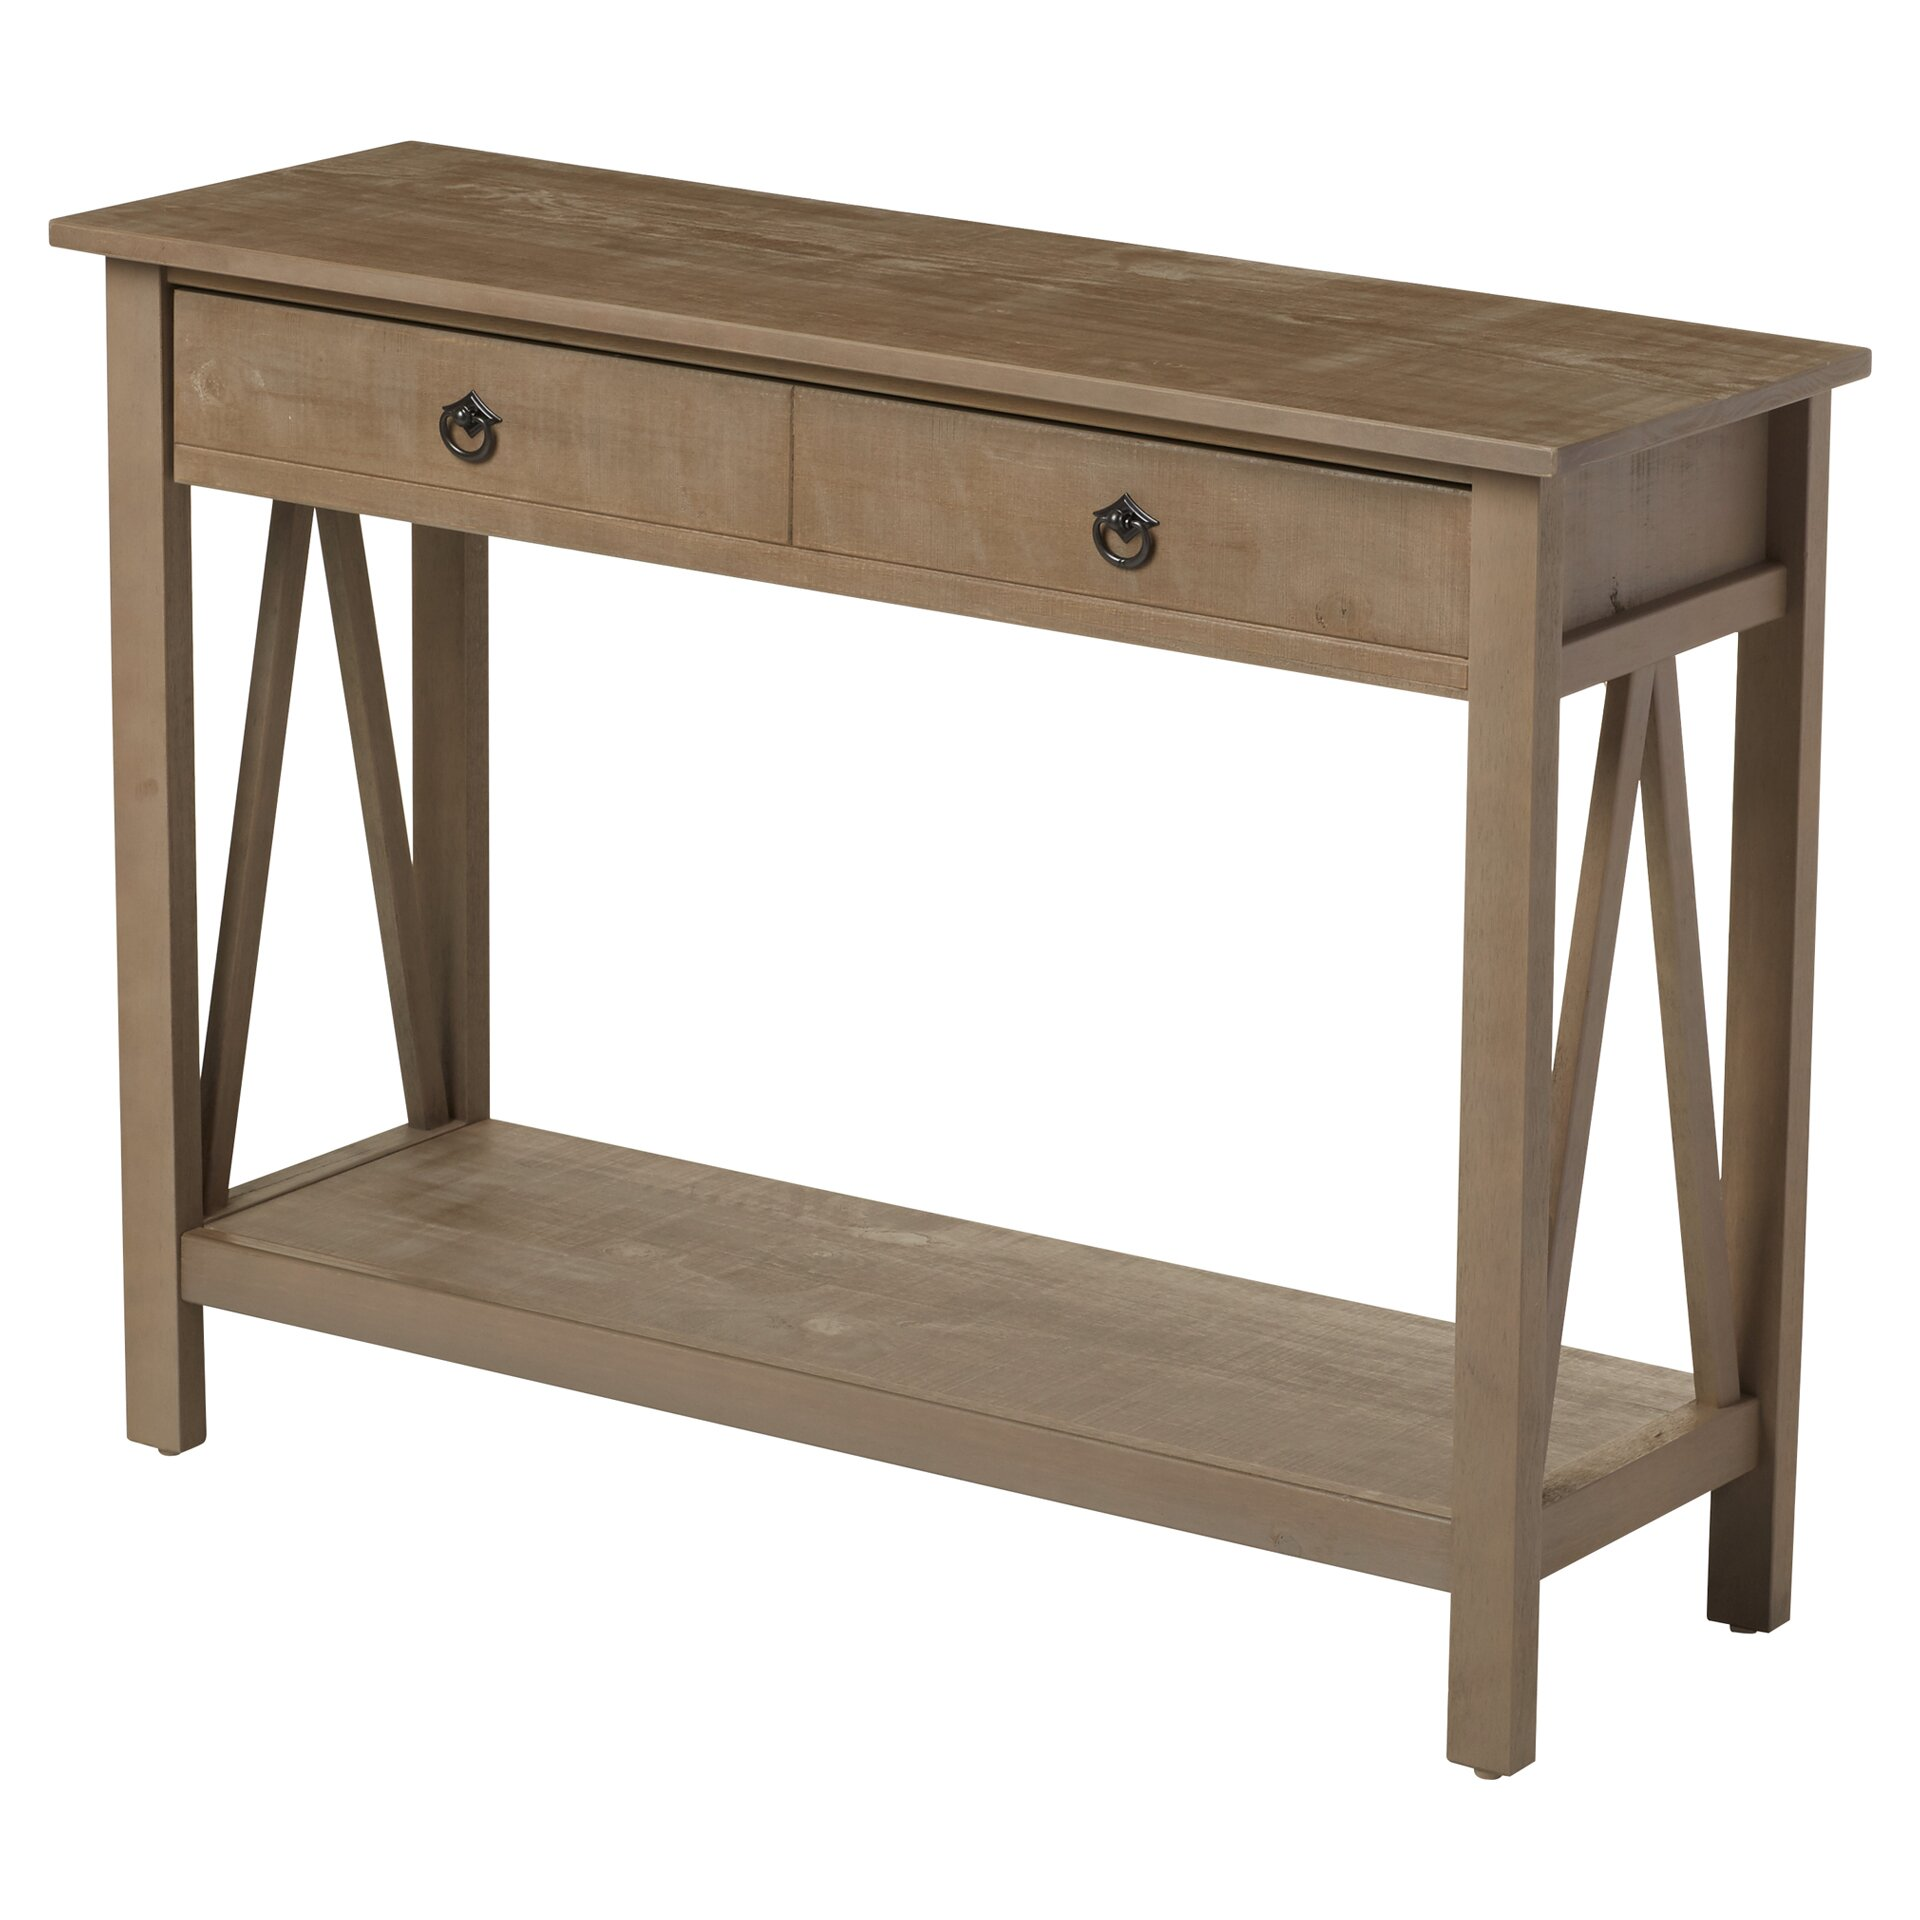 Andover mills soule console table reviews wayfair for Table console